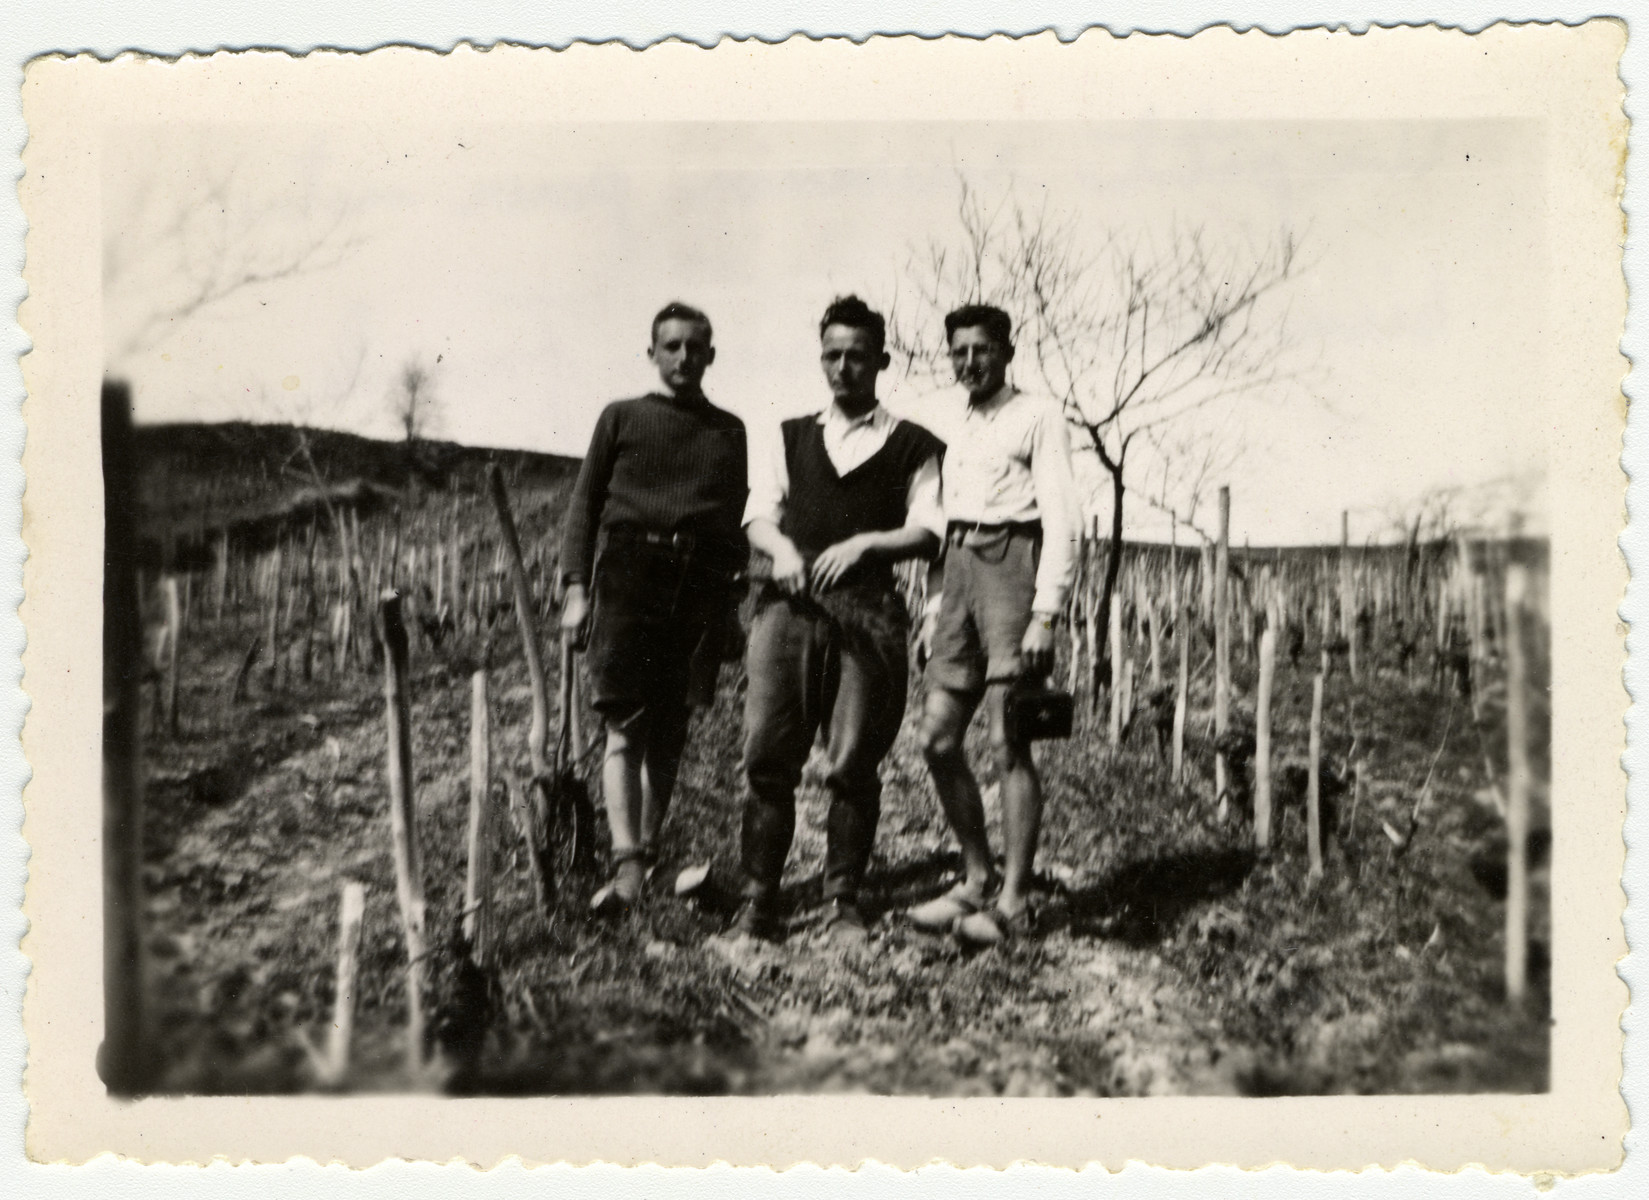 Three young men stand in the garden of the children's home Chateau de La Hille.   Pictured are Leo Lewin, Alex Frank, who had been colony director from 1940 to 1941, and Kurt Moser. Lewin escaped illegally to Switzerland in 1943. Frank hiked to safety across the Pyrenees in 1943 and Moser was caught and deported to Auschwitz where he died from typhus in 1943.